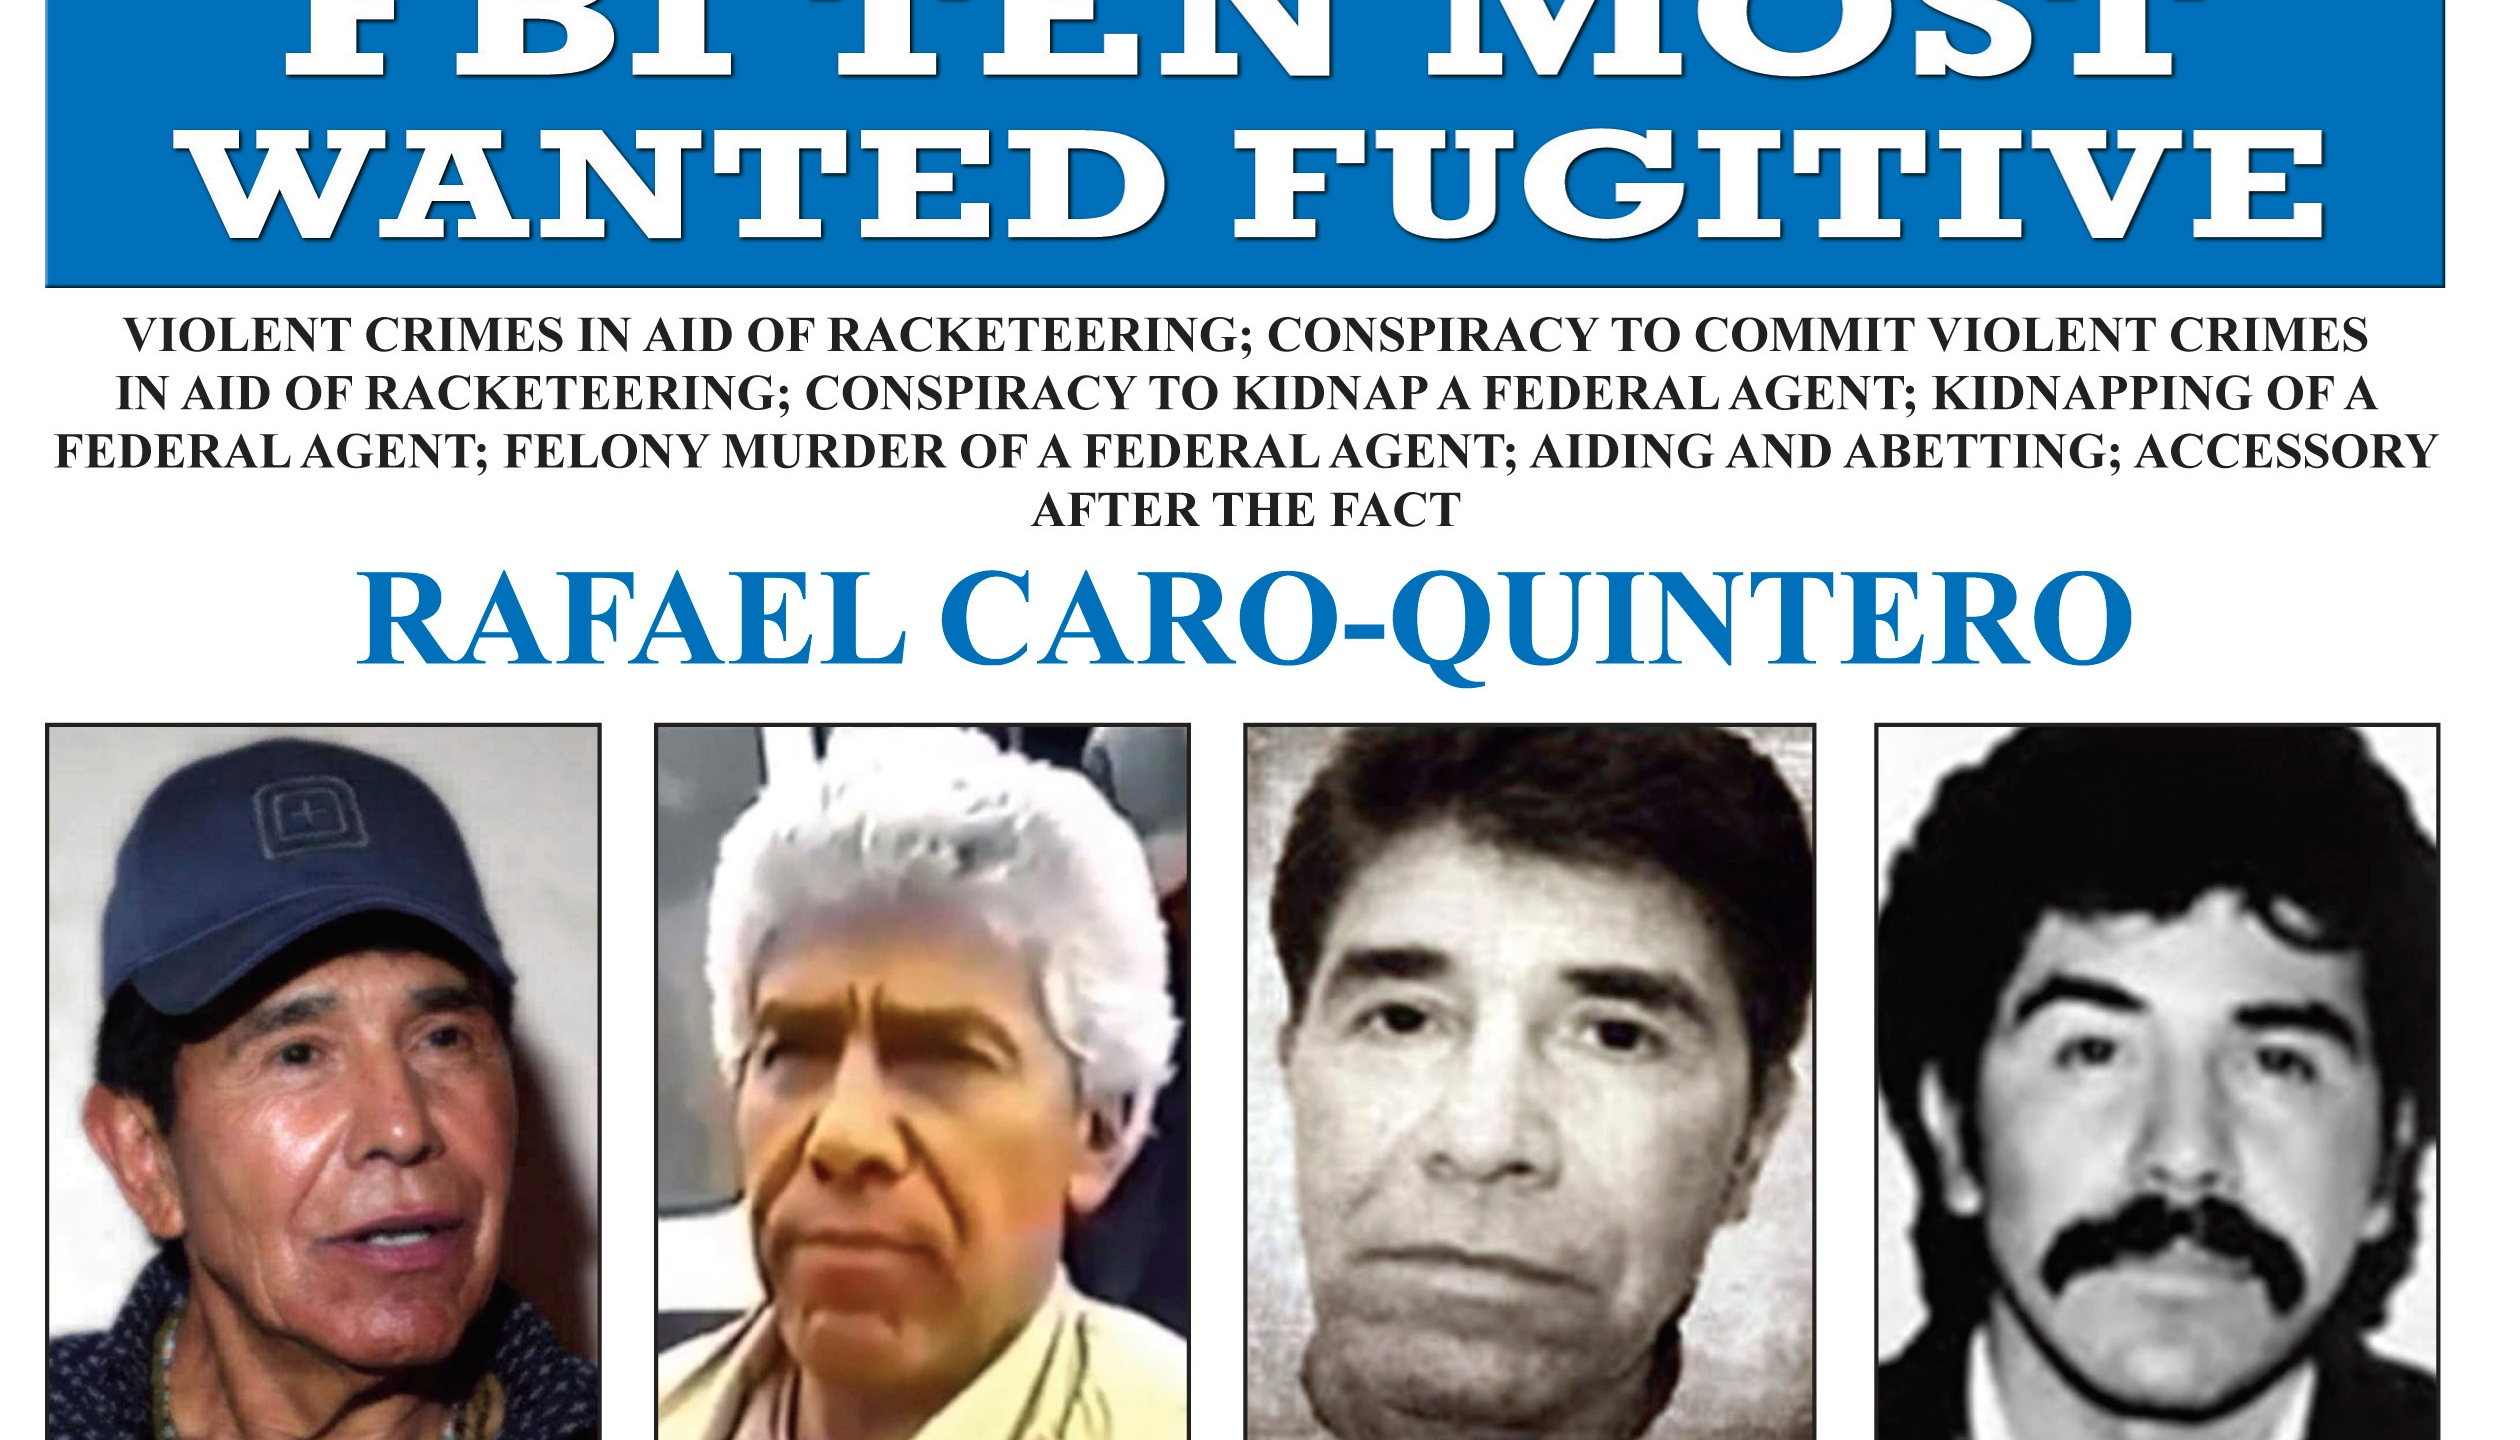 """This image released by the FBI shows the wanted poster for Rafael Caro Quintero, who tortured and murdered U.S. Drug Enforcement Administration agent Enrique """"Kiki"""" Camarena in 1985."""